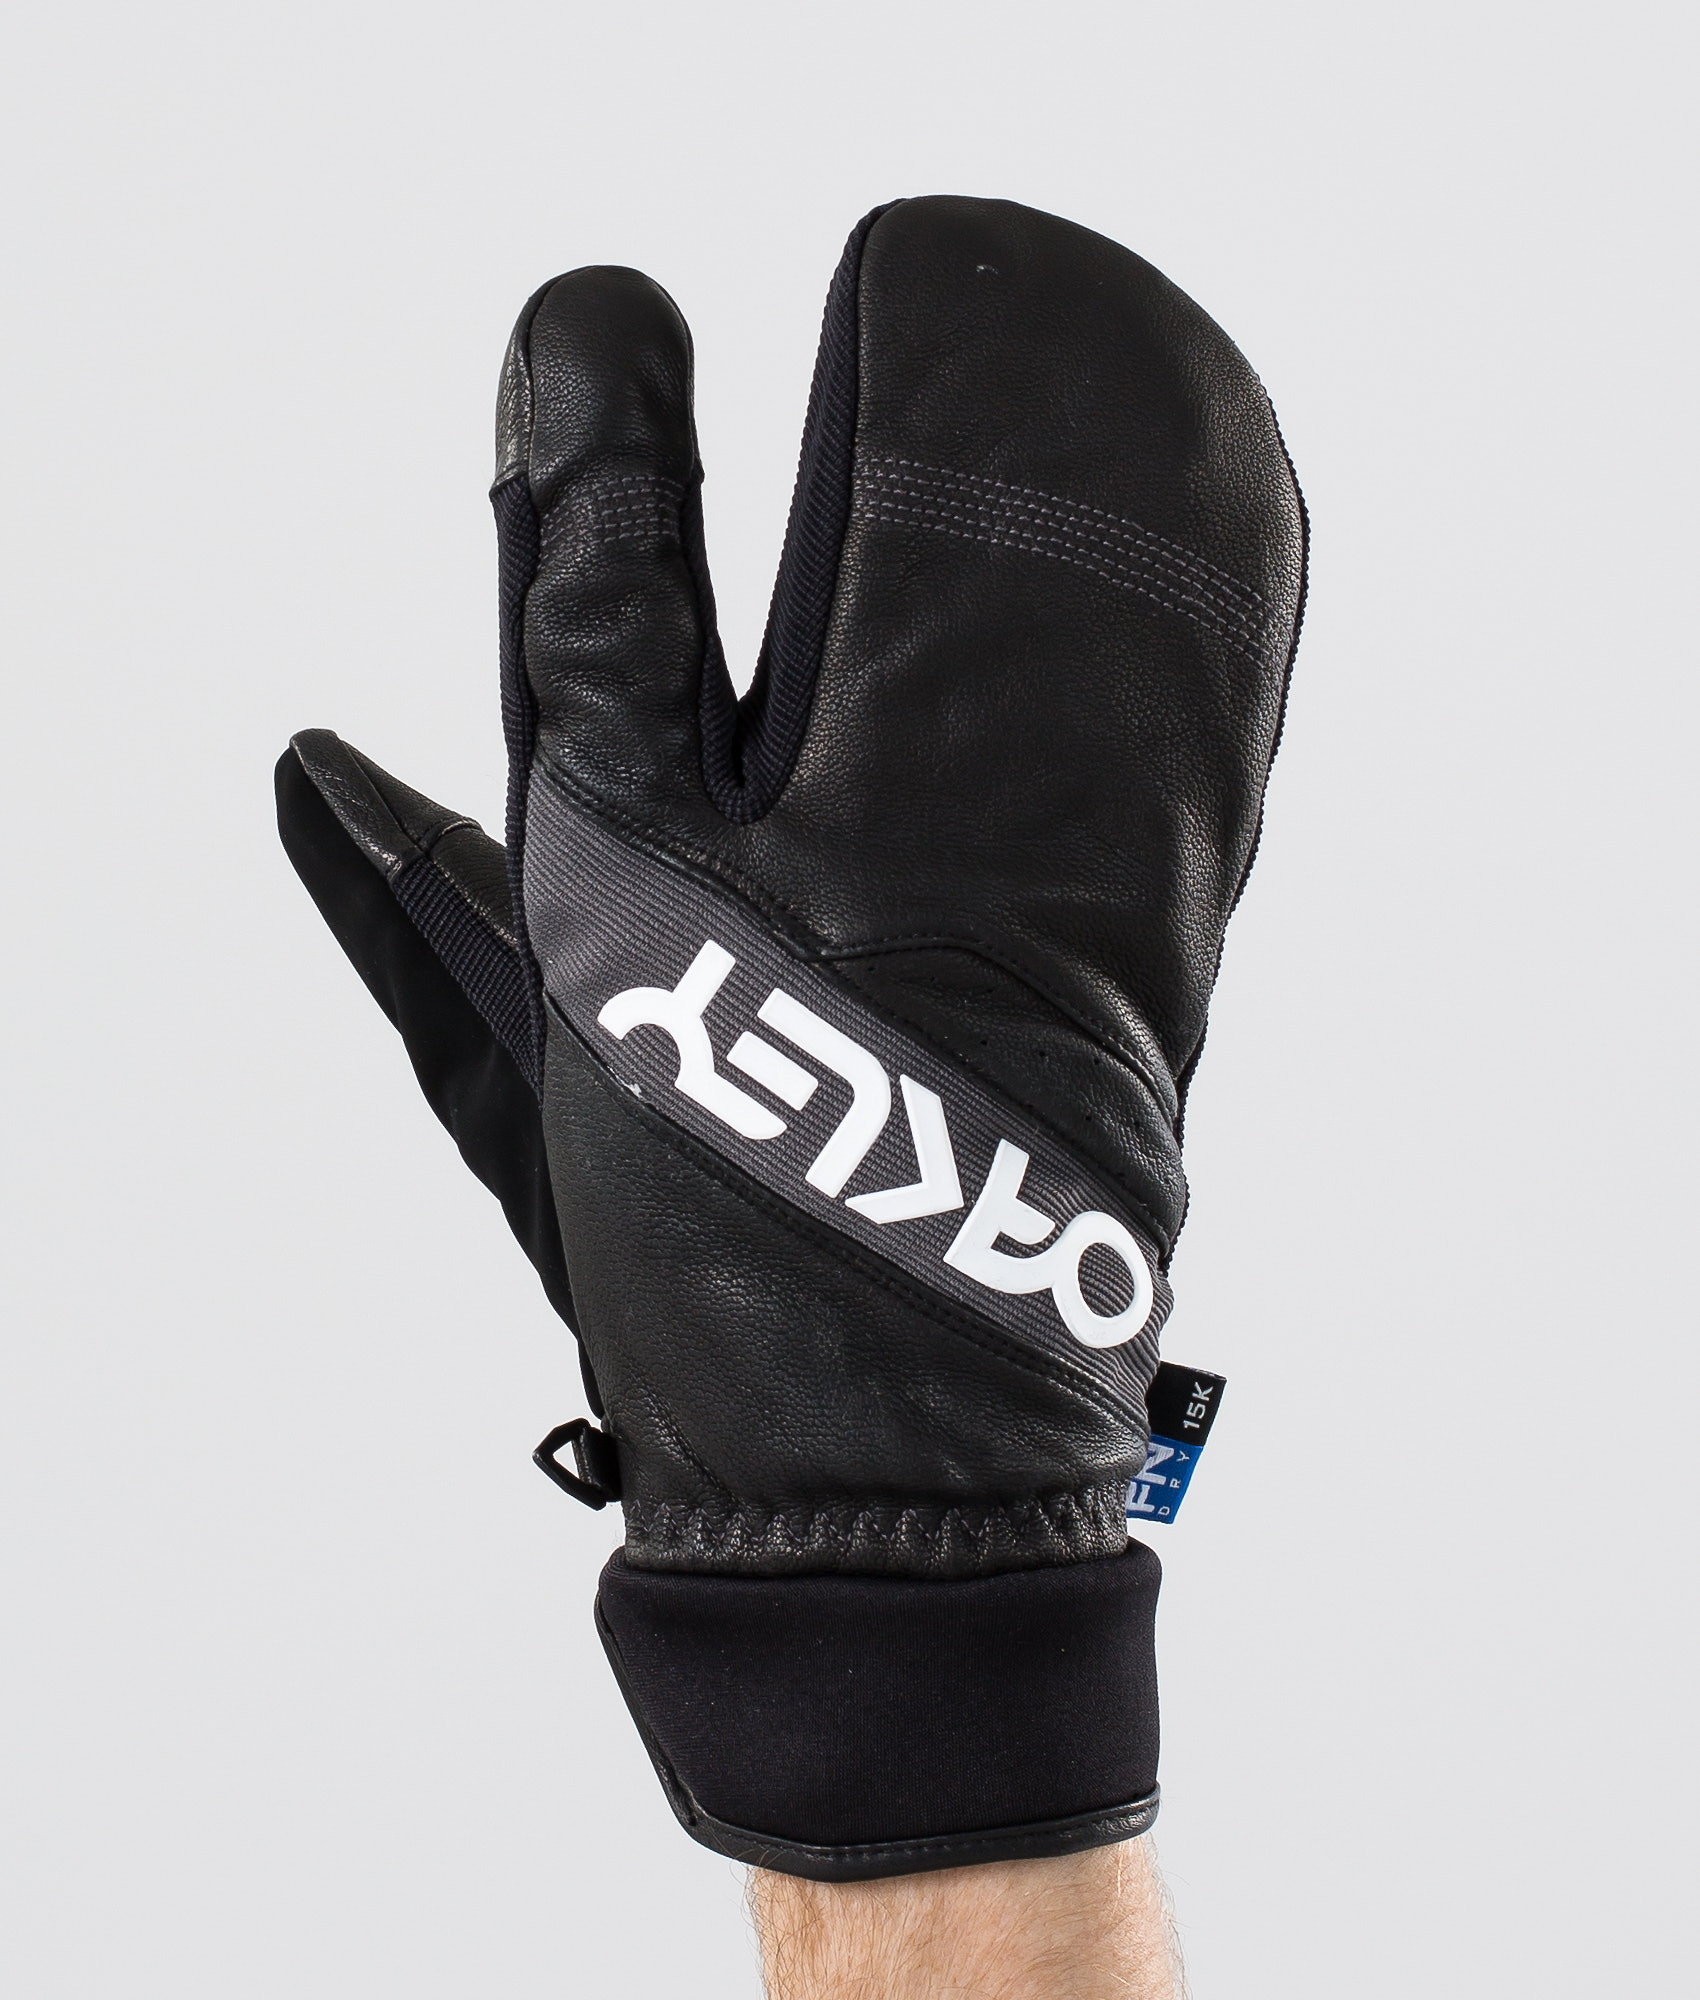 de8a7c000acc1 Oakley Factory Winter Trigger 2 Ski Gloves Blackout - Ridestore.com